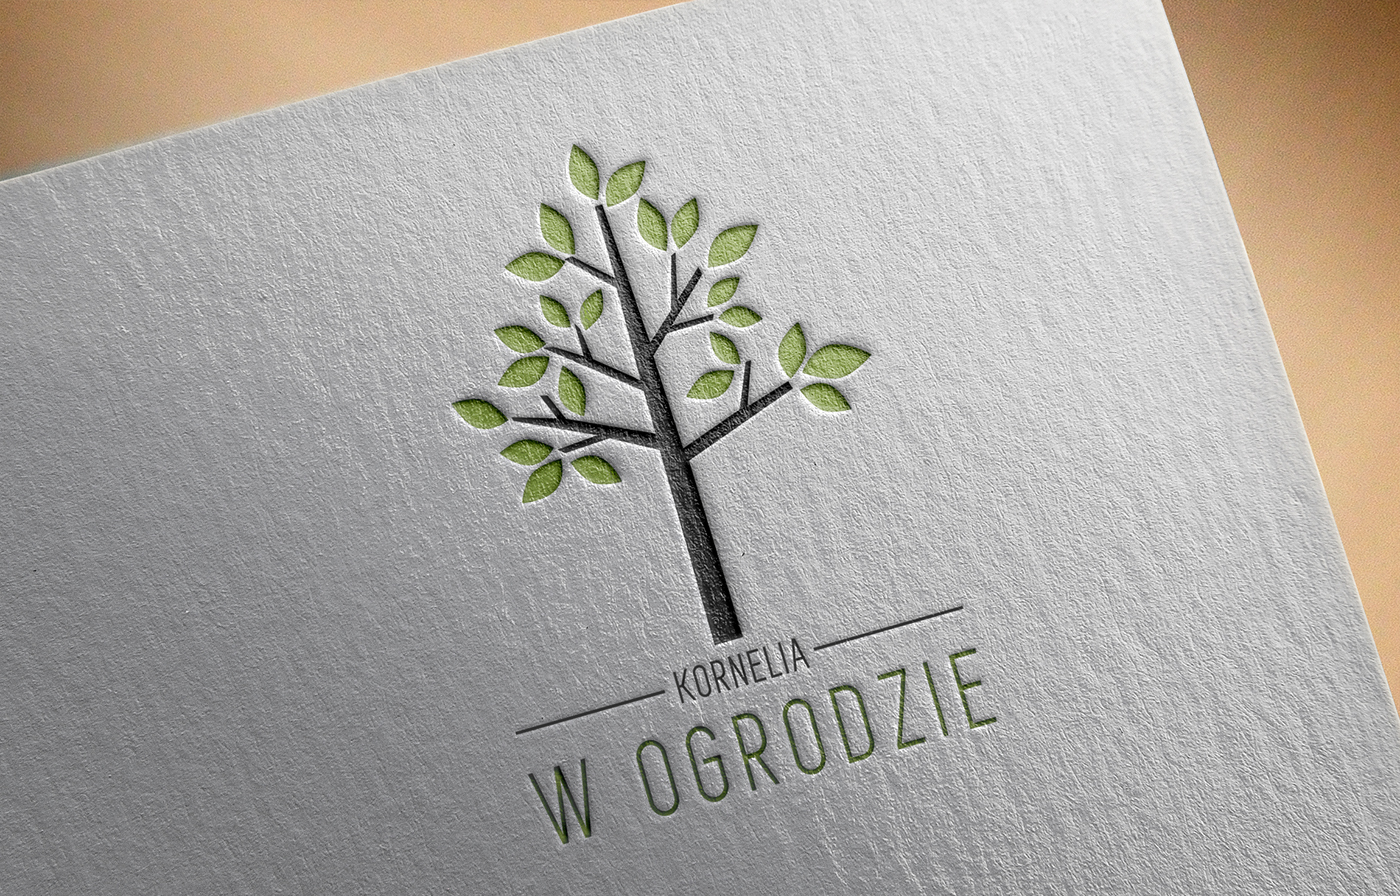 Business Card And Logo Design For Gardening Company U0027Kornelia W Ogrodzieu0027  Based In Poland.